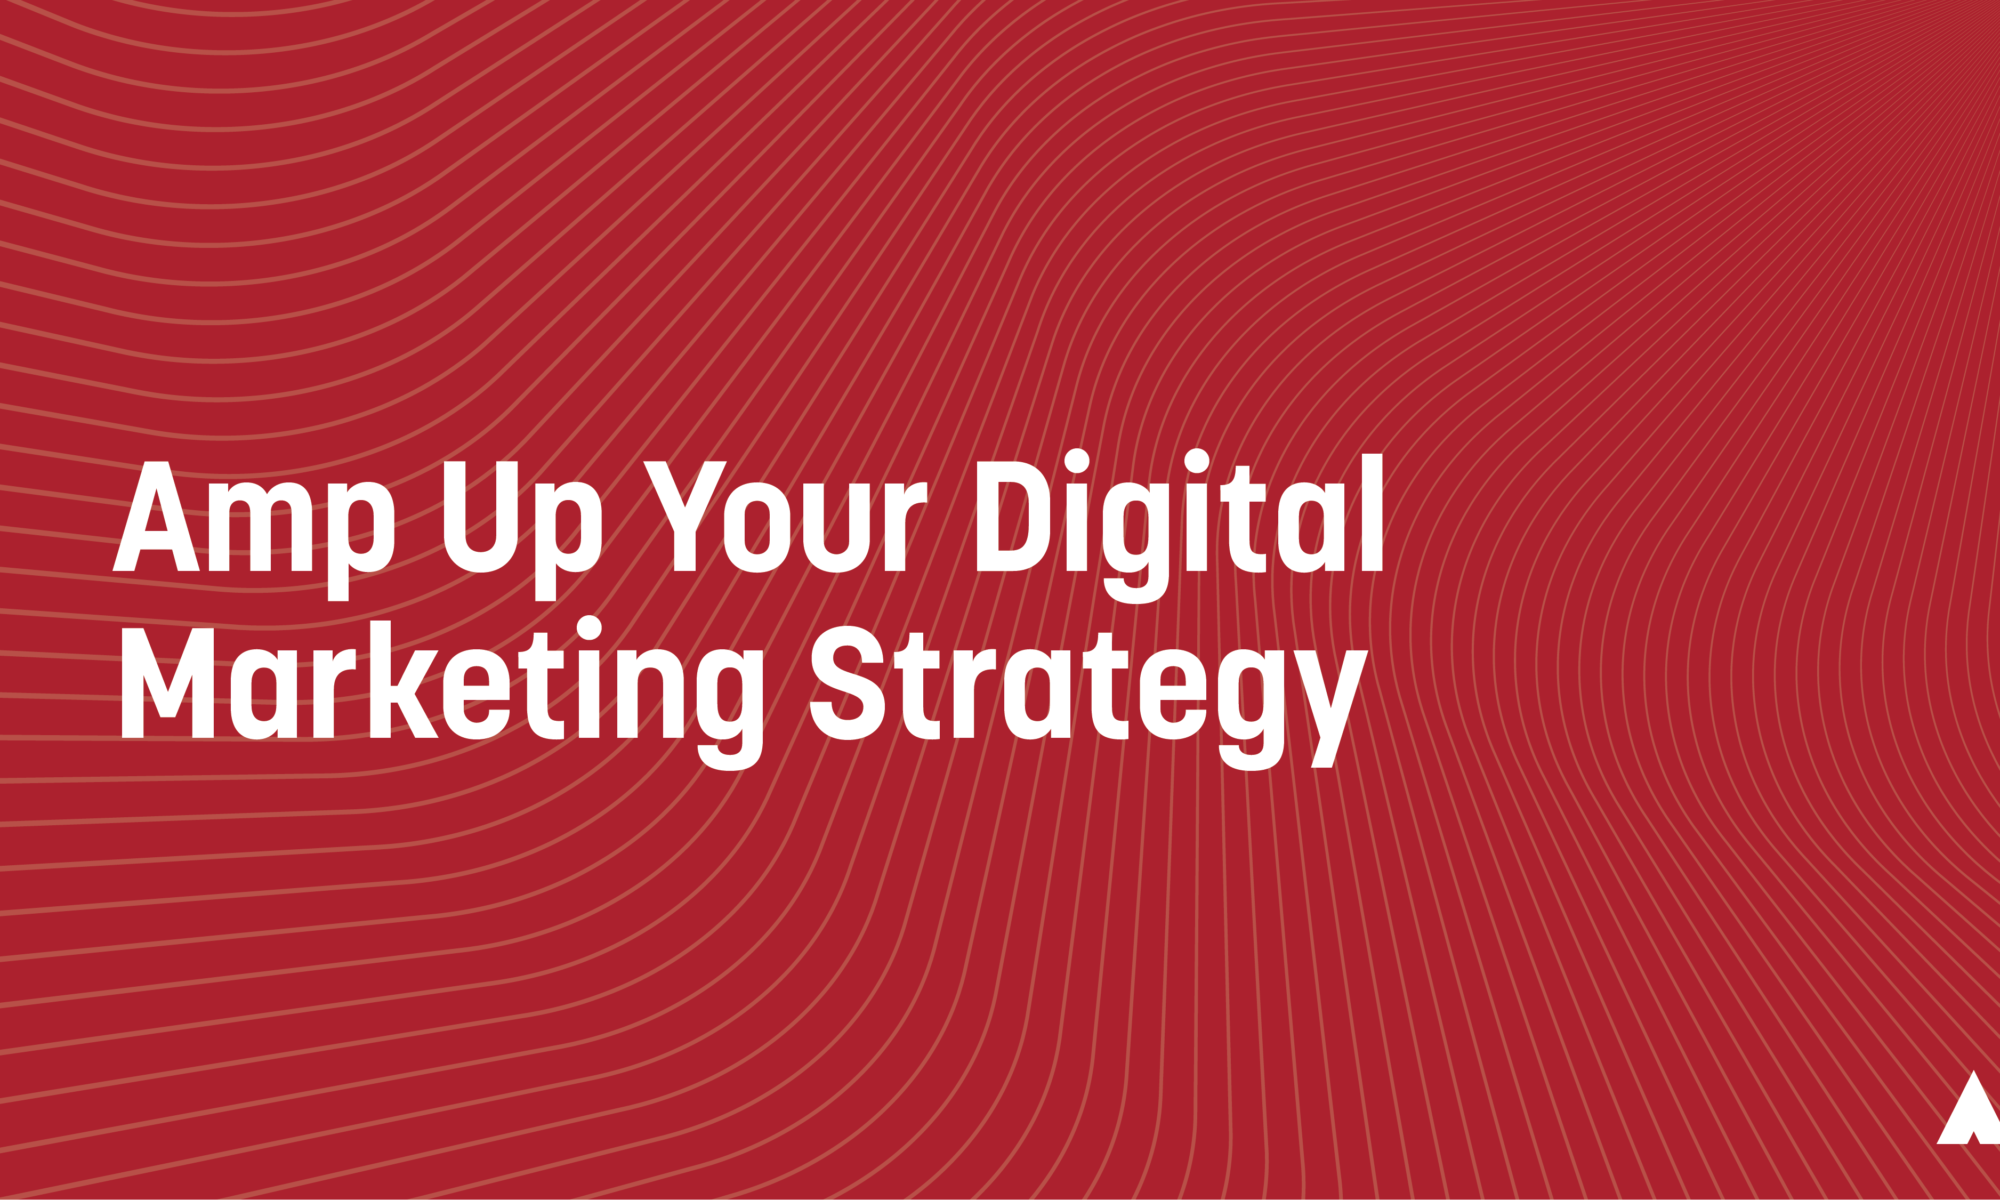 Amp Up Your Digital Marketing Strategy